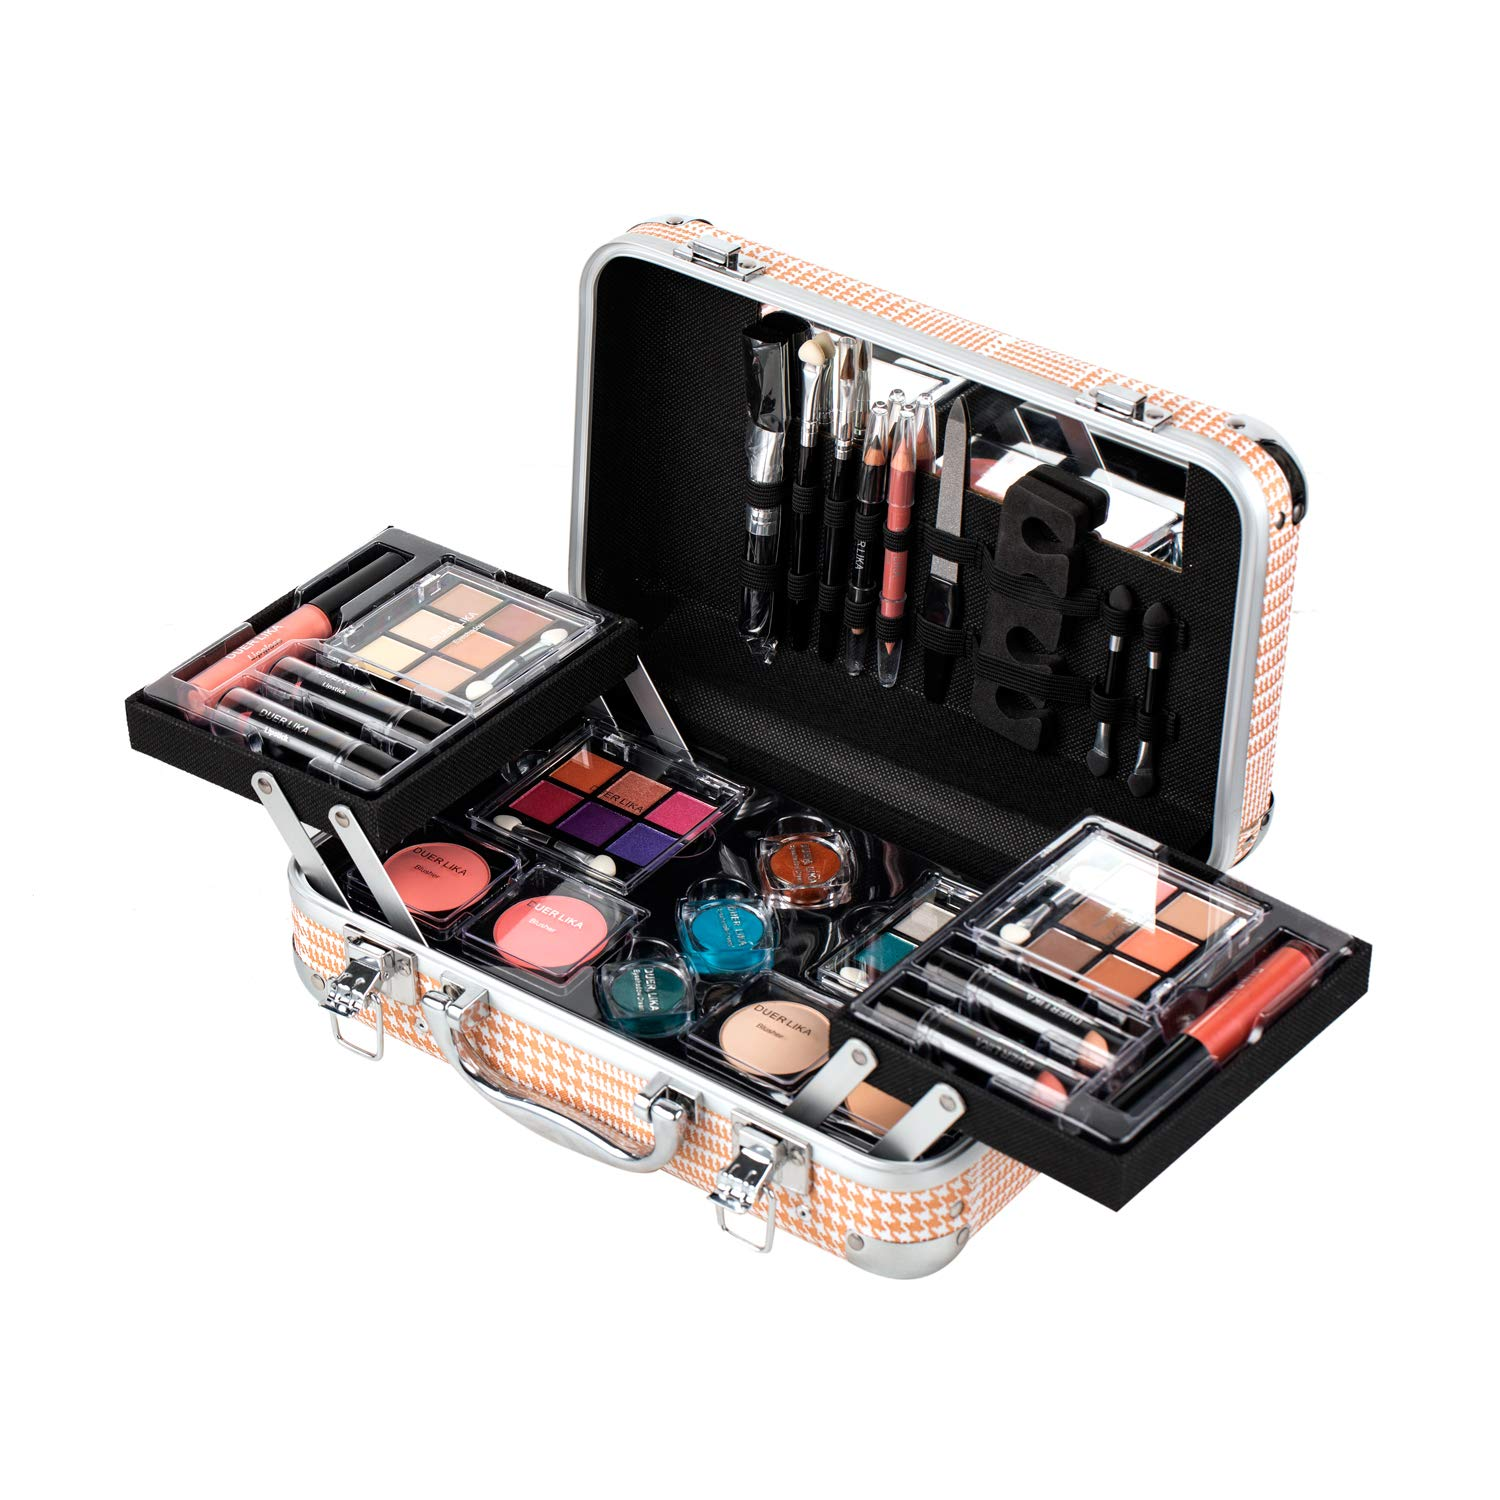 Maúve Carry All Trunk Train Case with Makeup and Reusable Black & White Aluminum Case (GOLD-18)